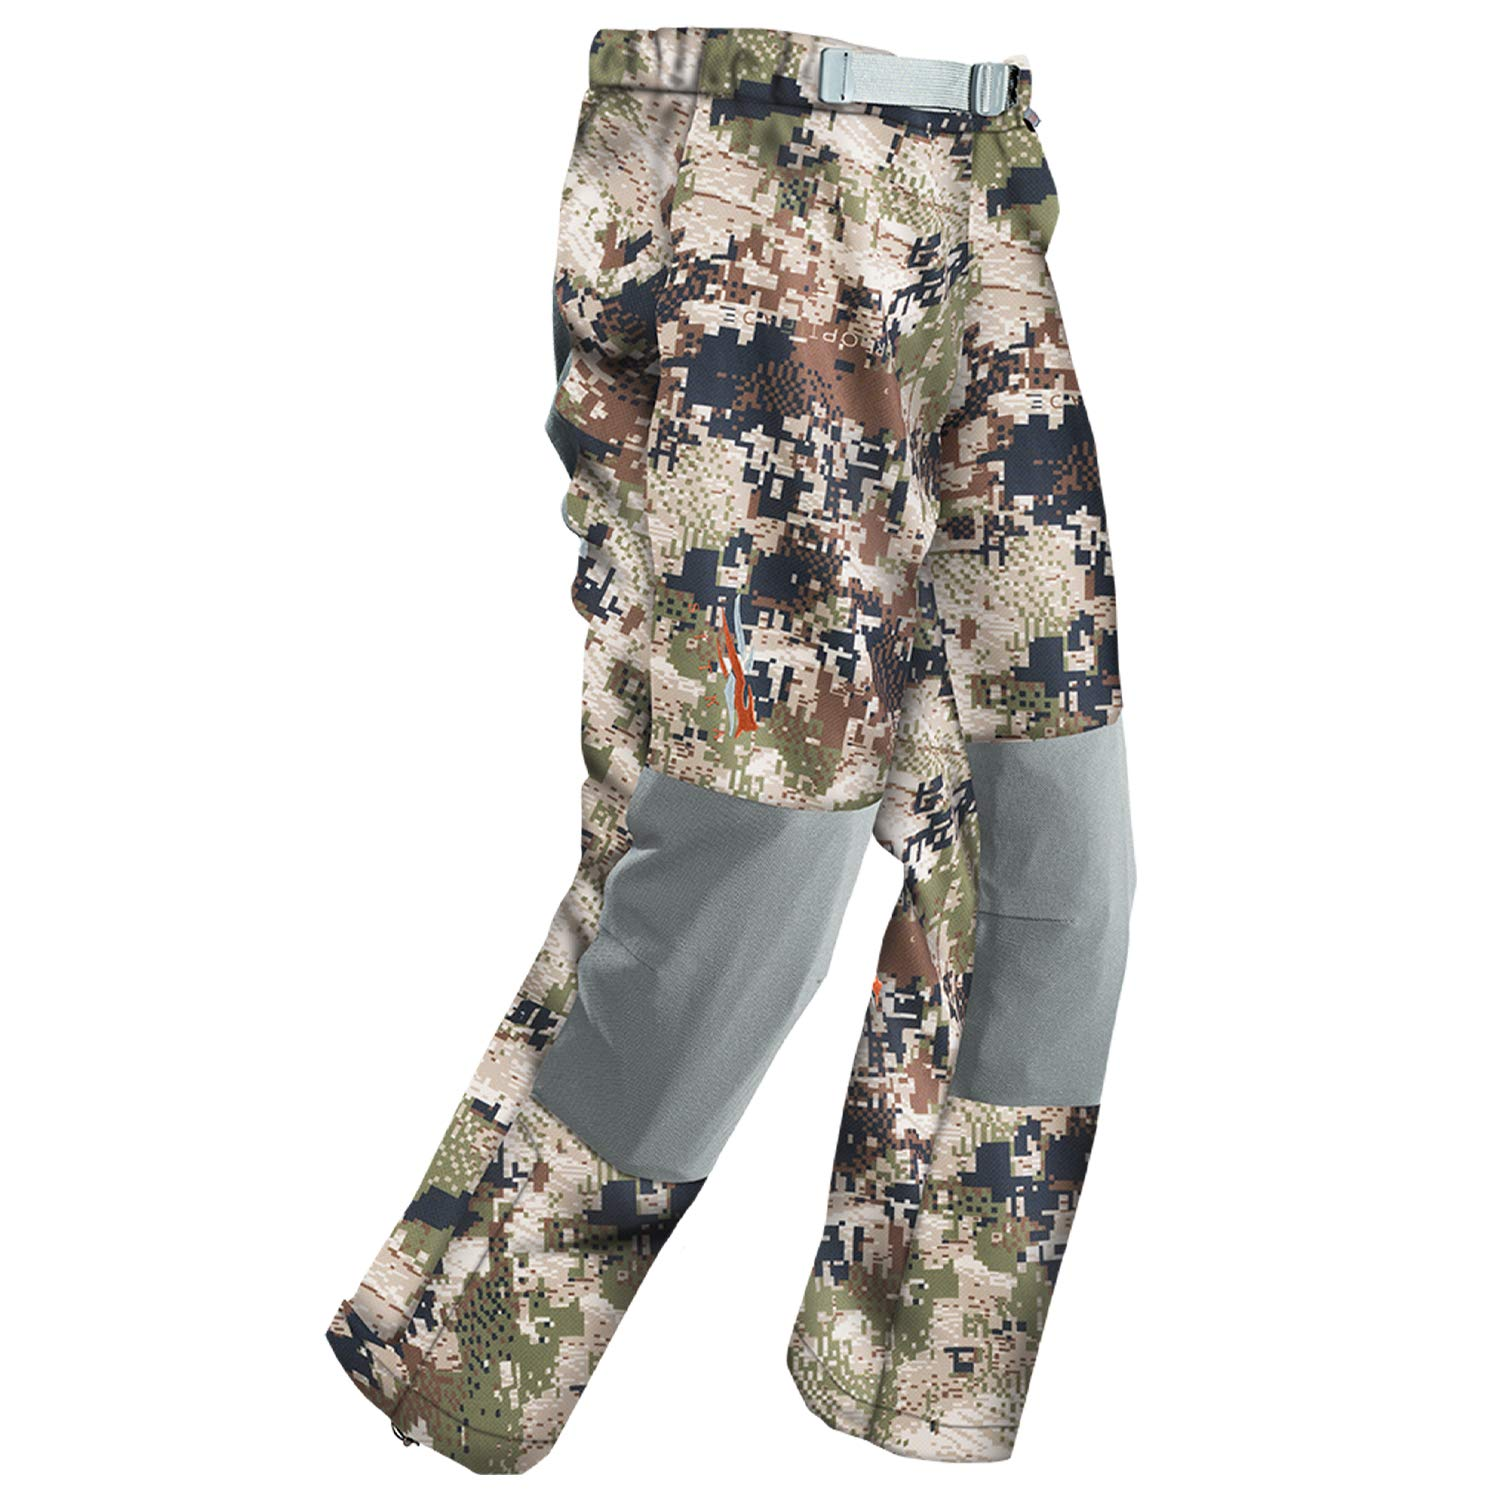 SITKA Gear New for 2019 Youth Cyclone Pant Optifade Subalpine Youth Small by SITKA